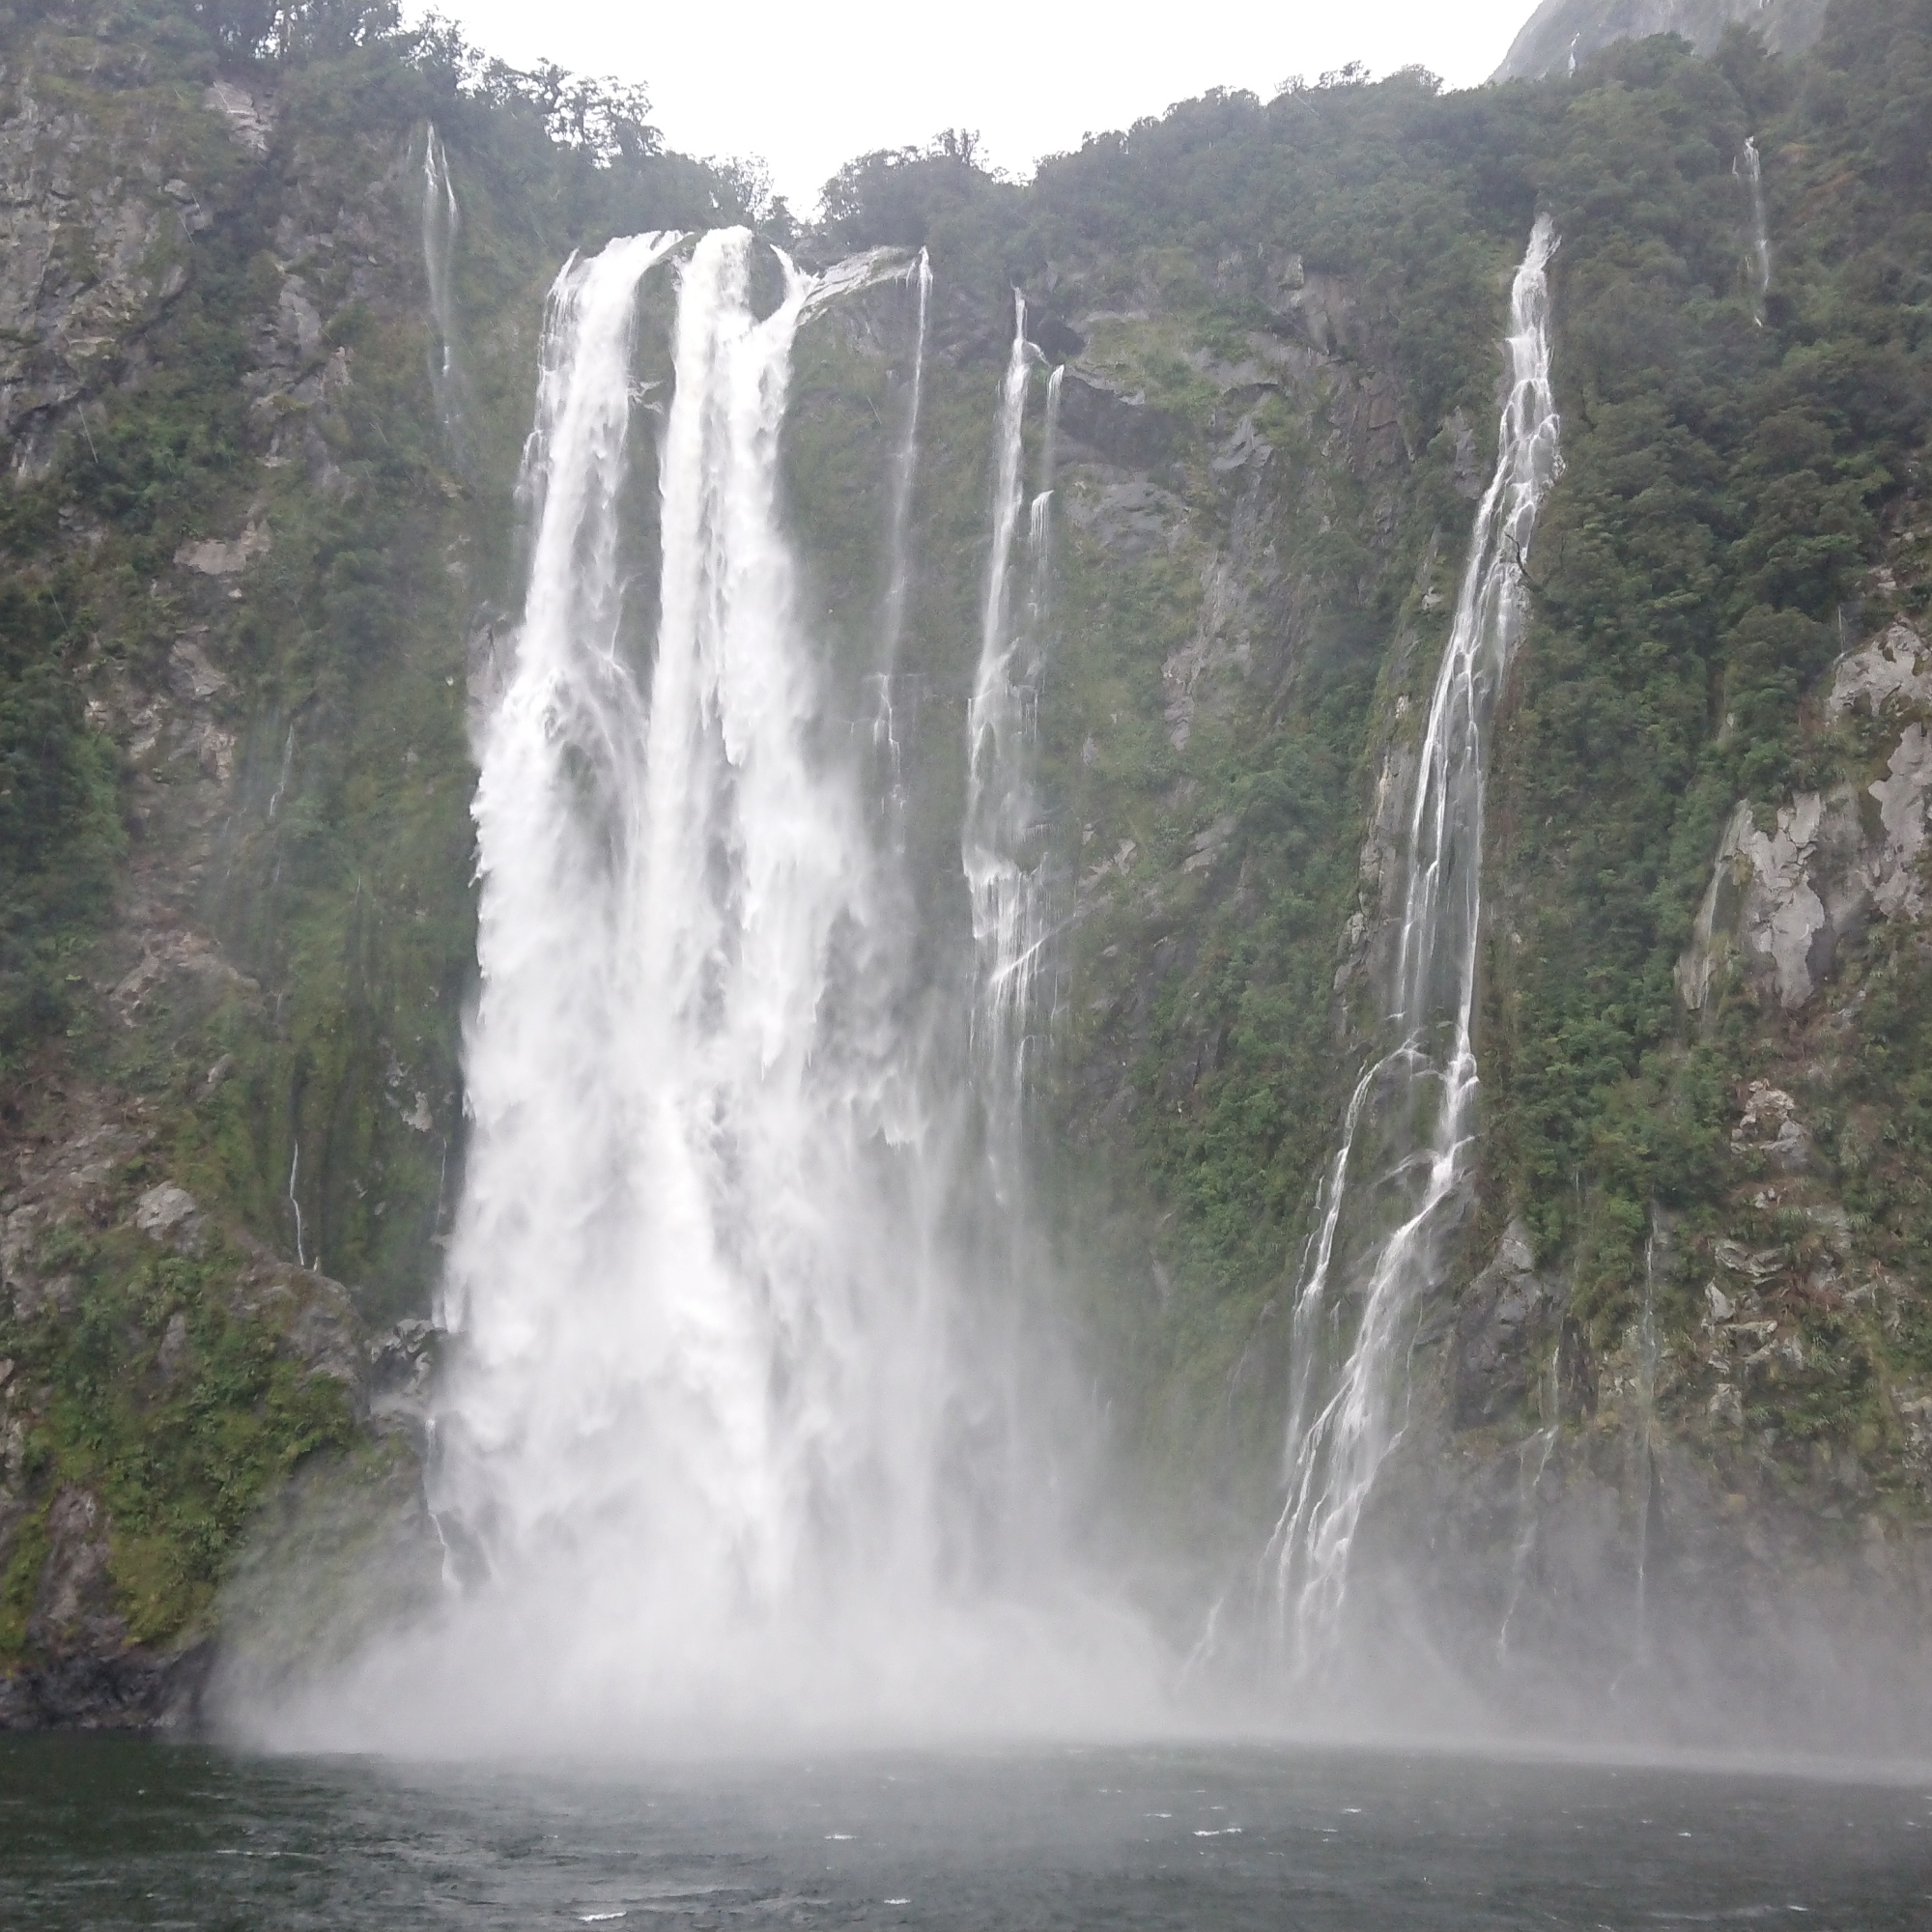 A large waterfall in Milford Sound crashing from the rocks above